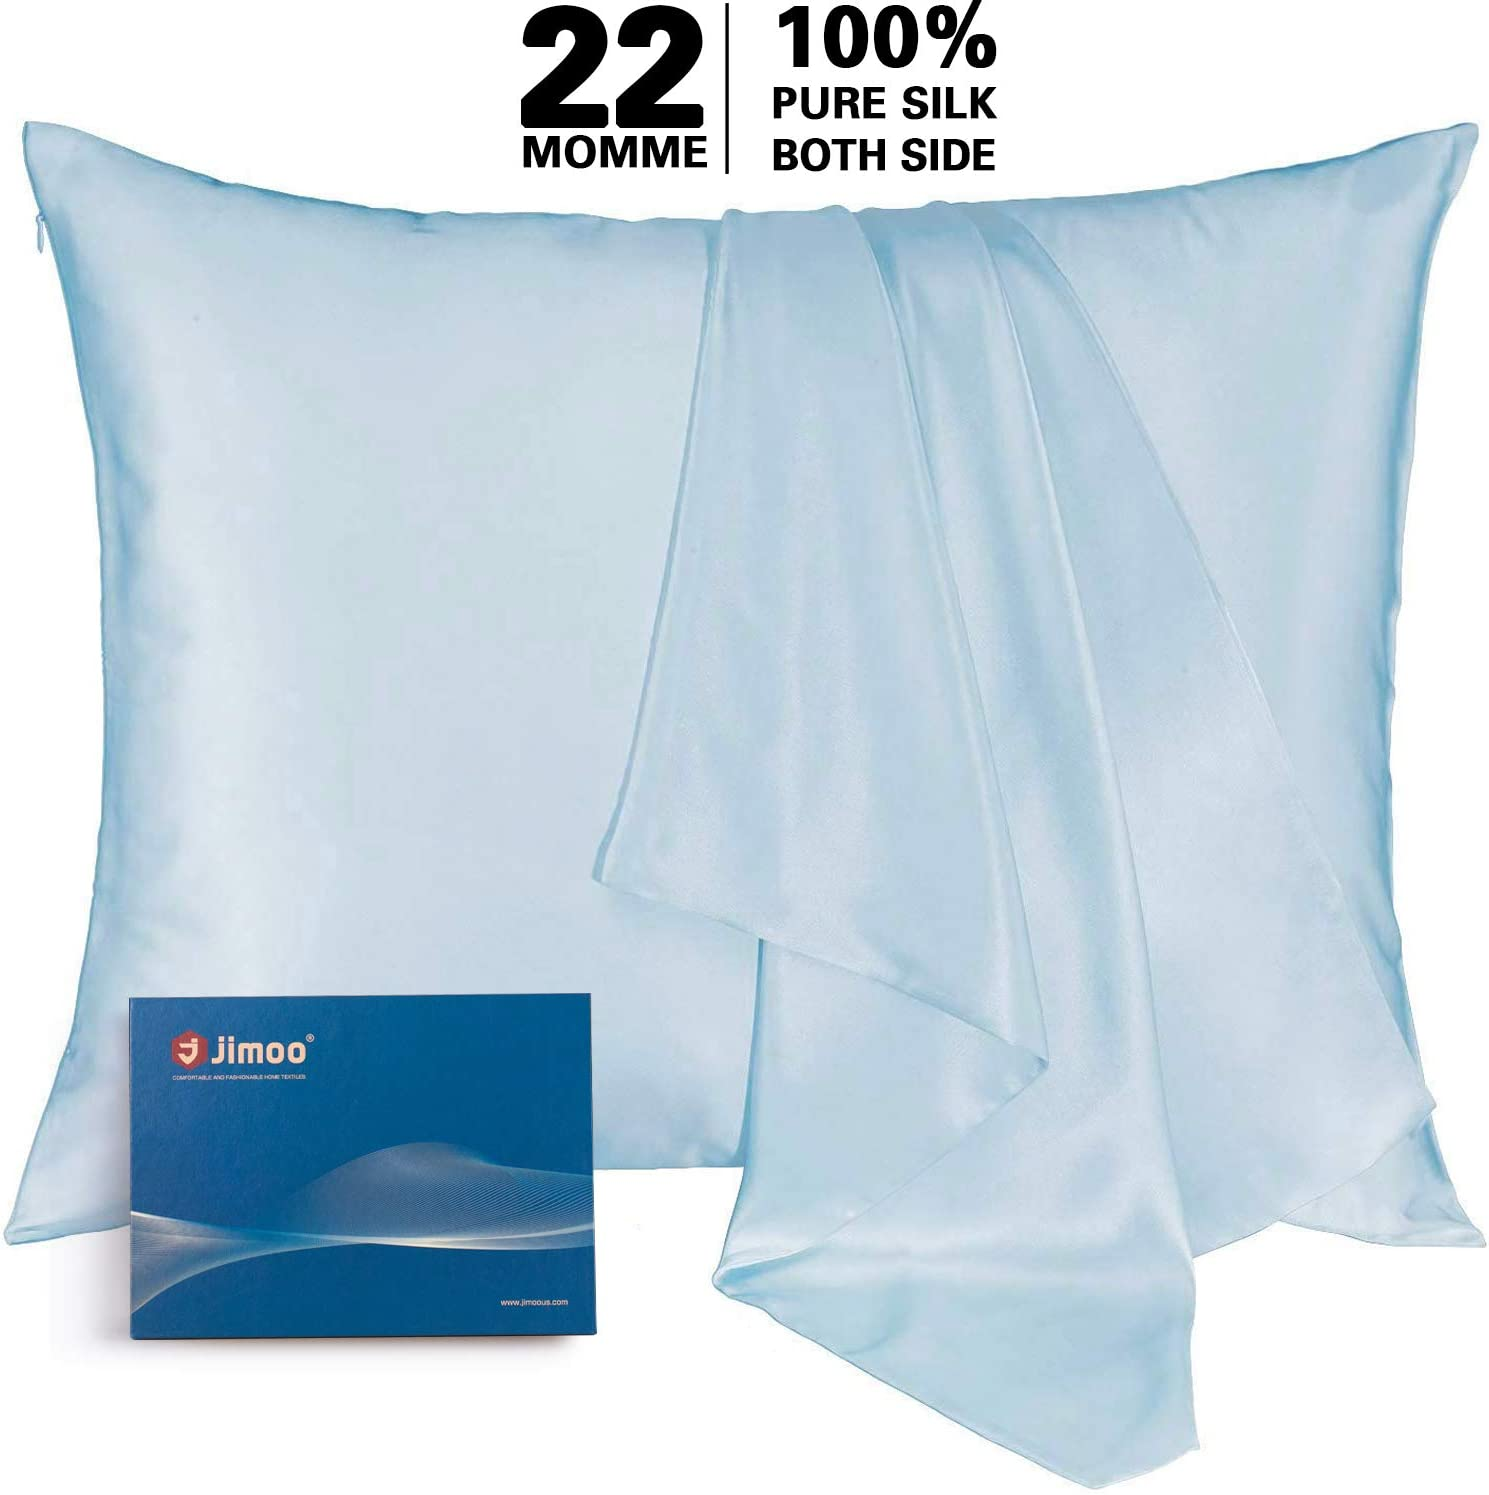 Natural Silk Pillowcase, for Hair and Skin with Hidden Zipper,22 Momme,600 Thread Count 100% Mulberry Silk, Soft Breathable Smooth Both Sided Silk Pillow Cover(Light Blue, King 20''×36'',1pcs)